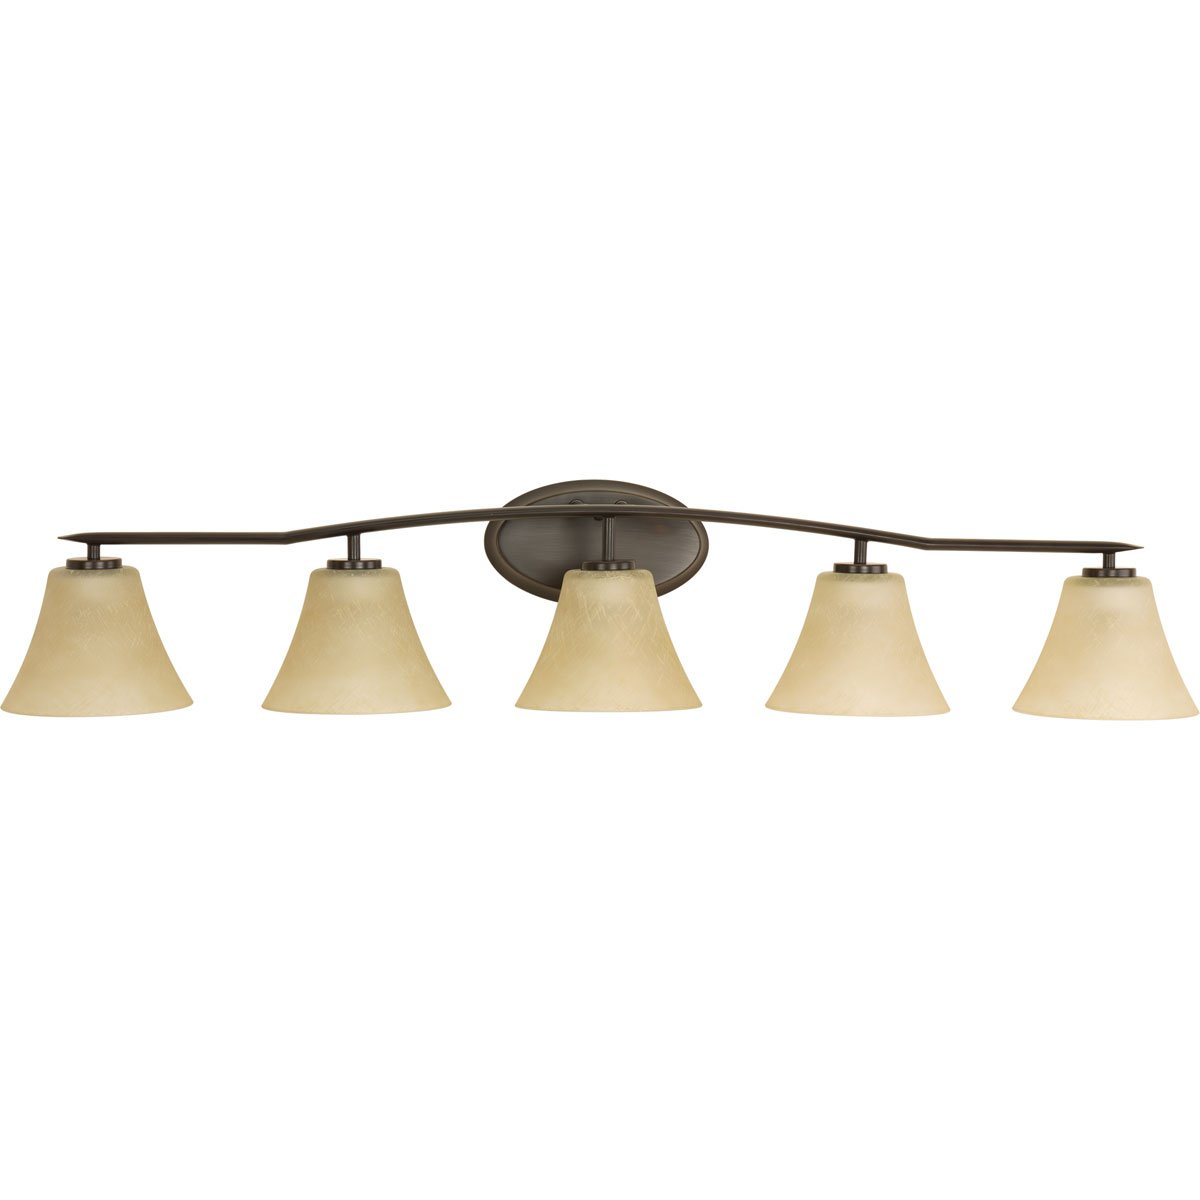 Progress Lighting P2016-20 Bravo 5-Lt. Bath and Vanity Fixture with Umber linen glass shades